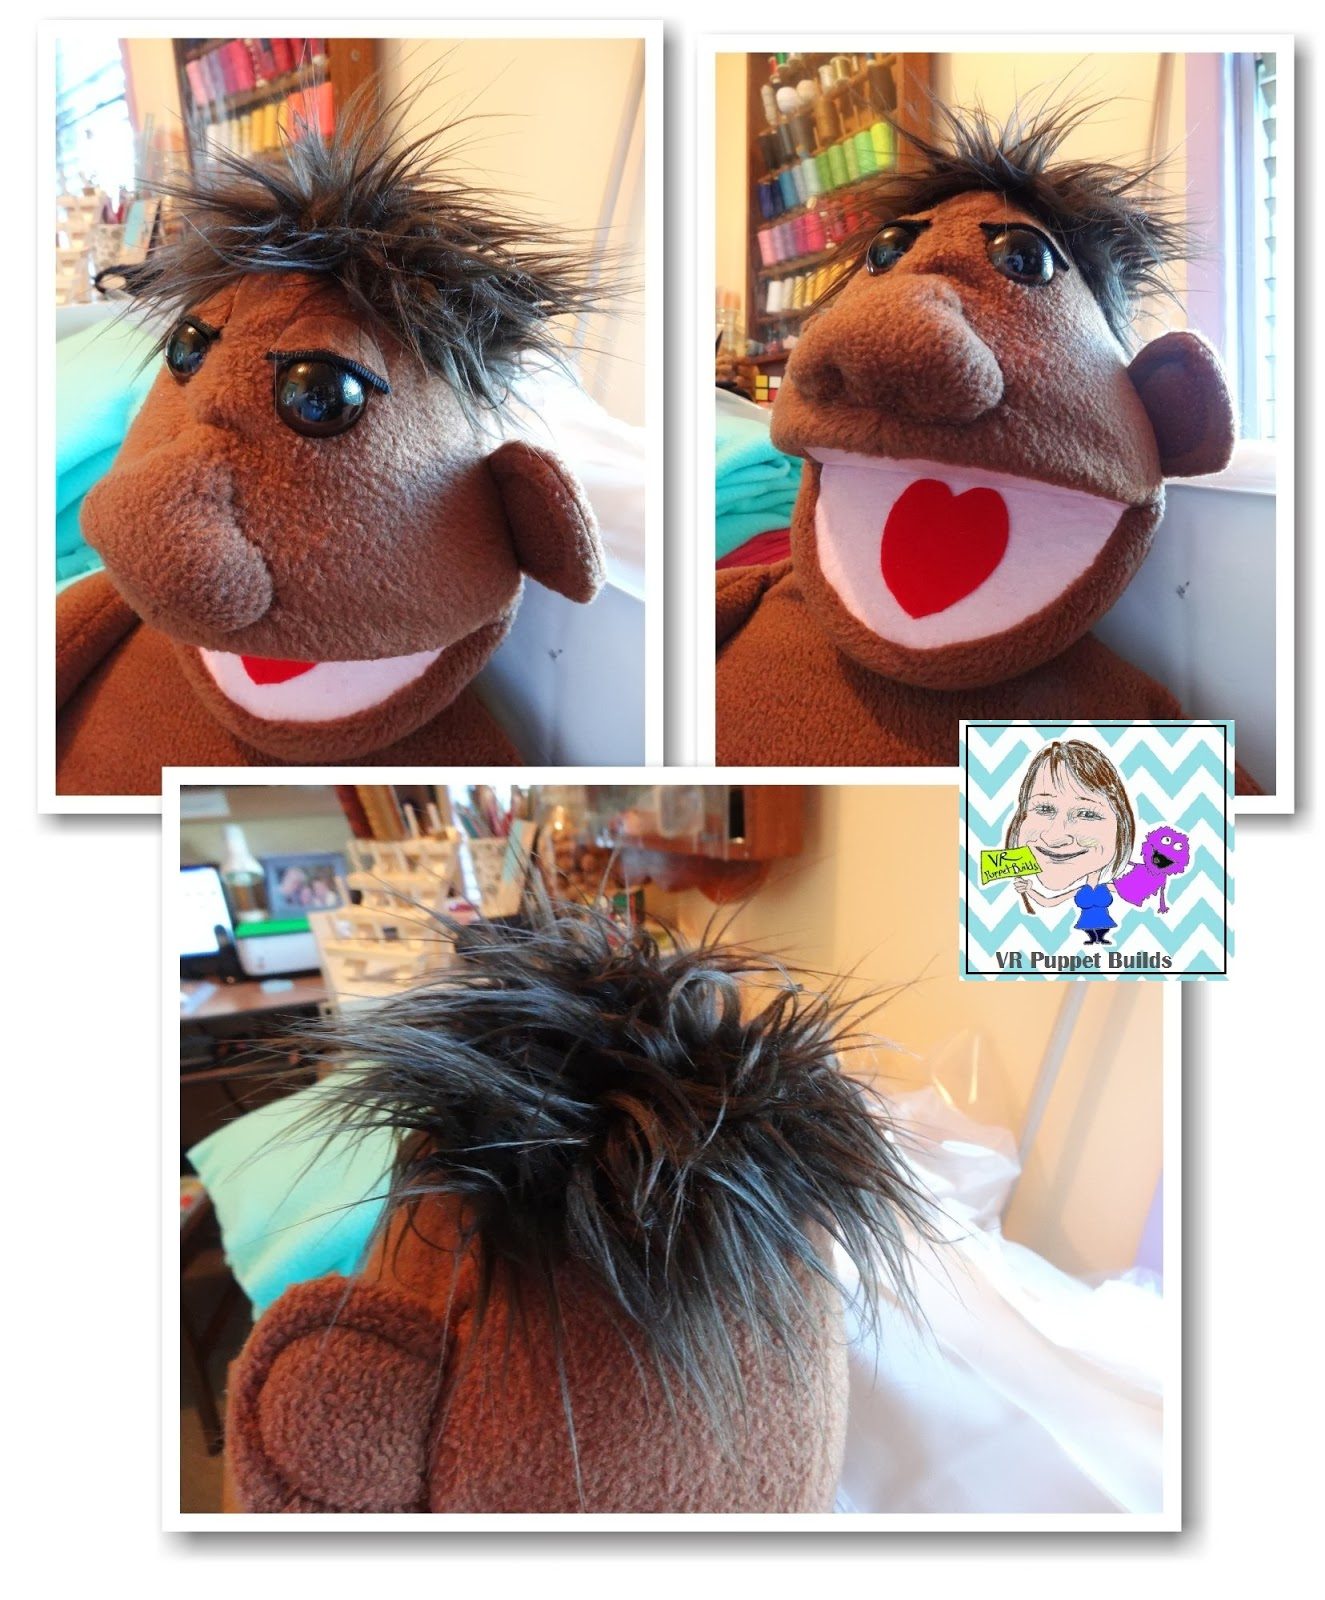 Vr Puppet Builds Making A Fur Wig Cap For A Puppet